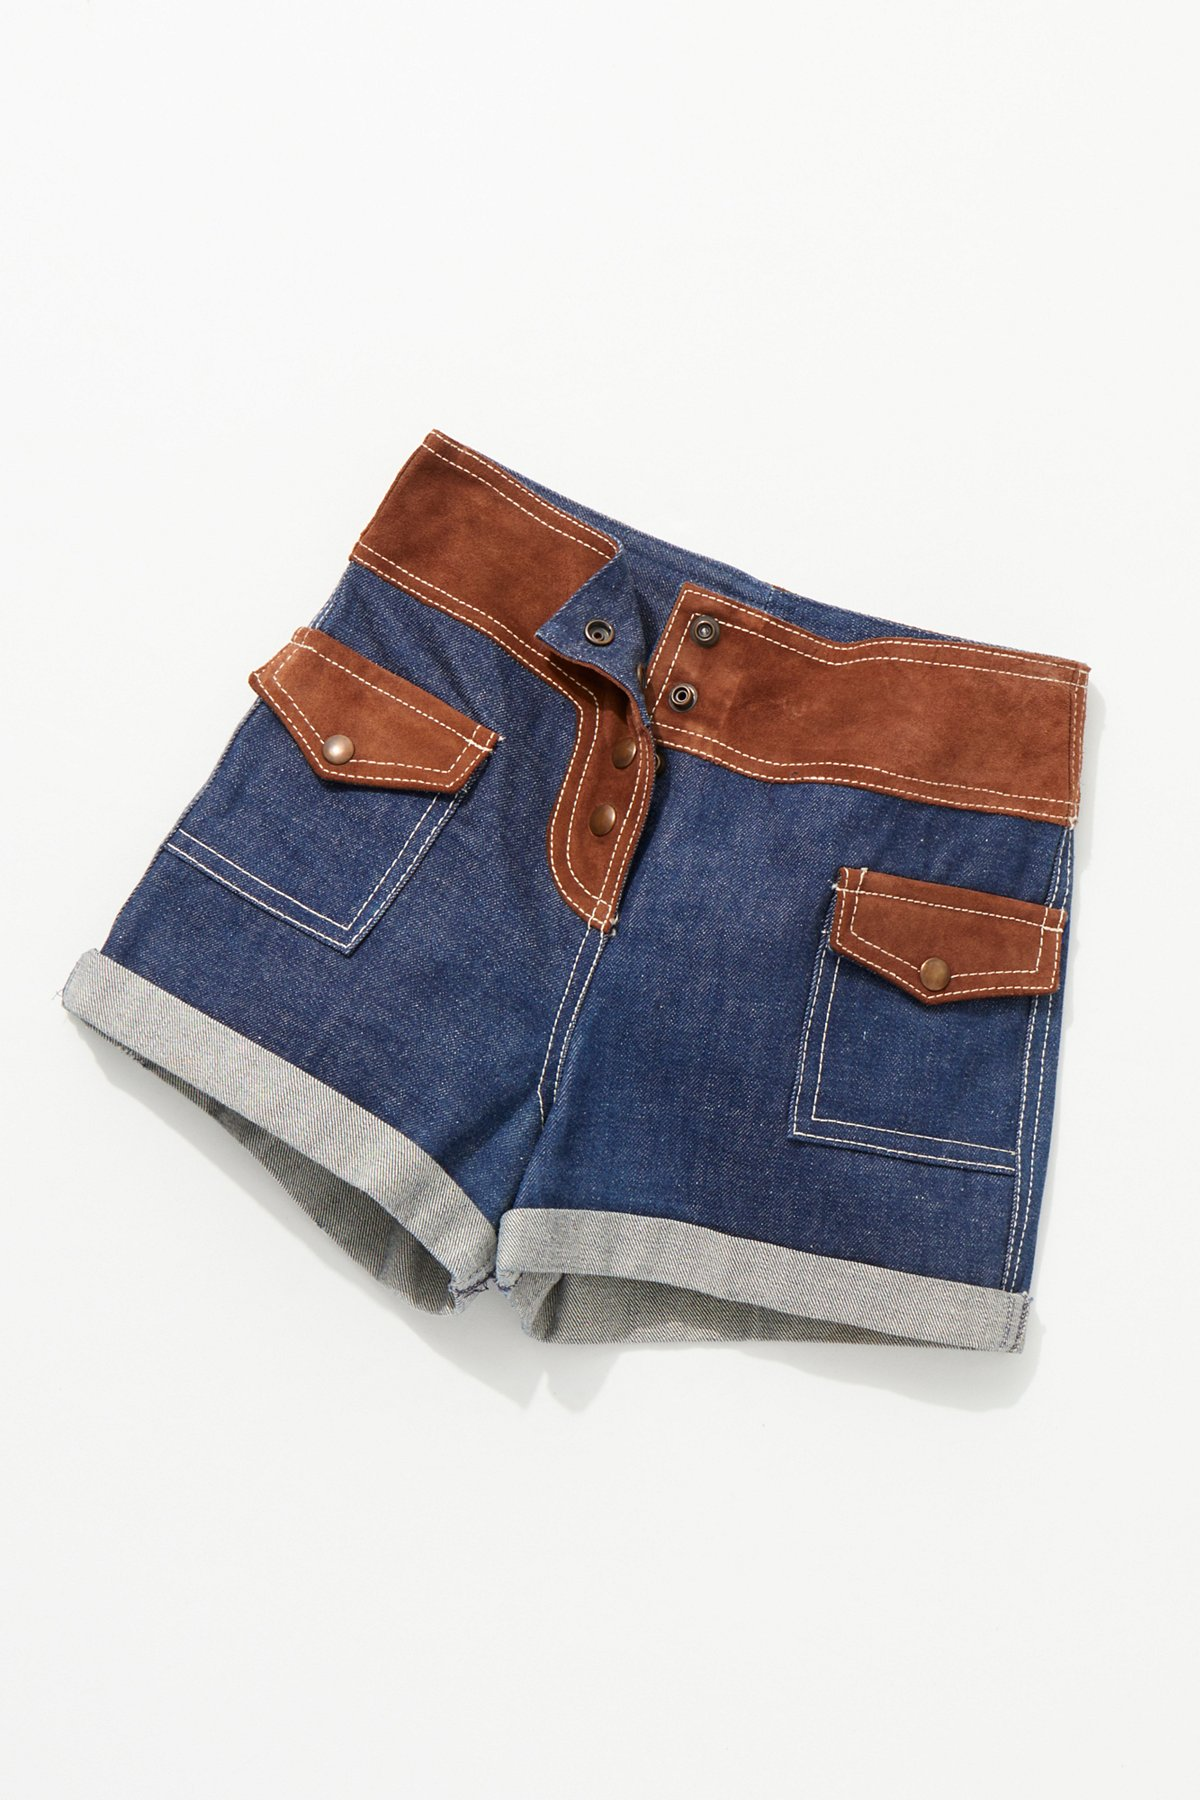 Vintage 1970s Suede and Denim Shorts